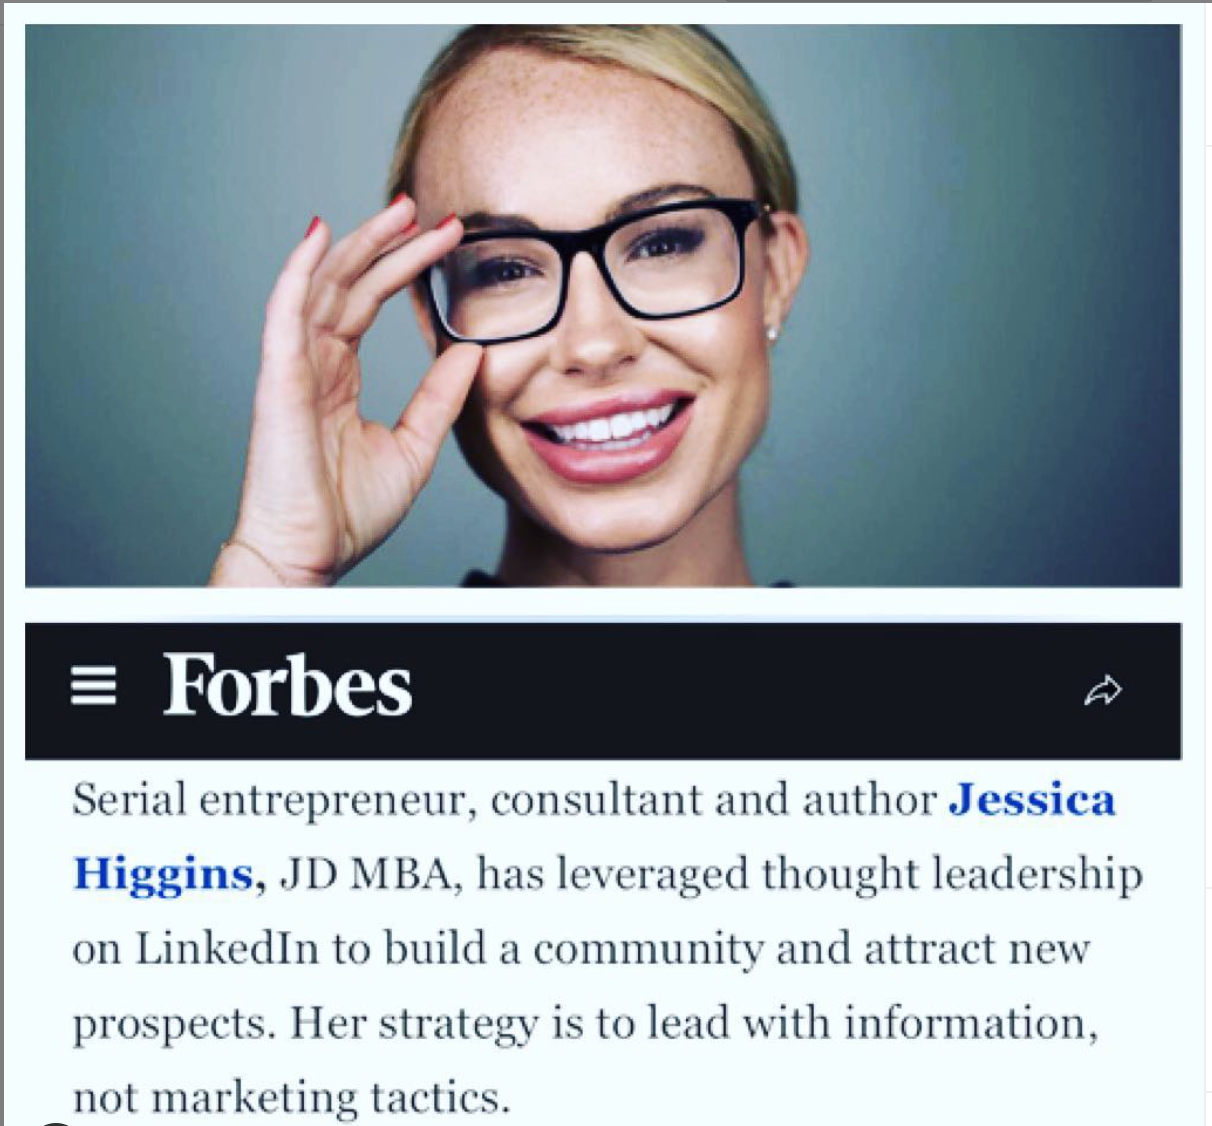 Jessica was profiled by Forbes for her thought leadership in marketing